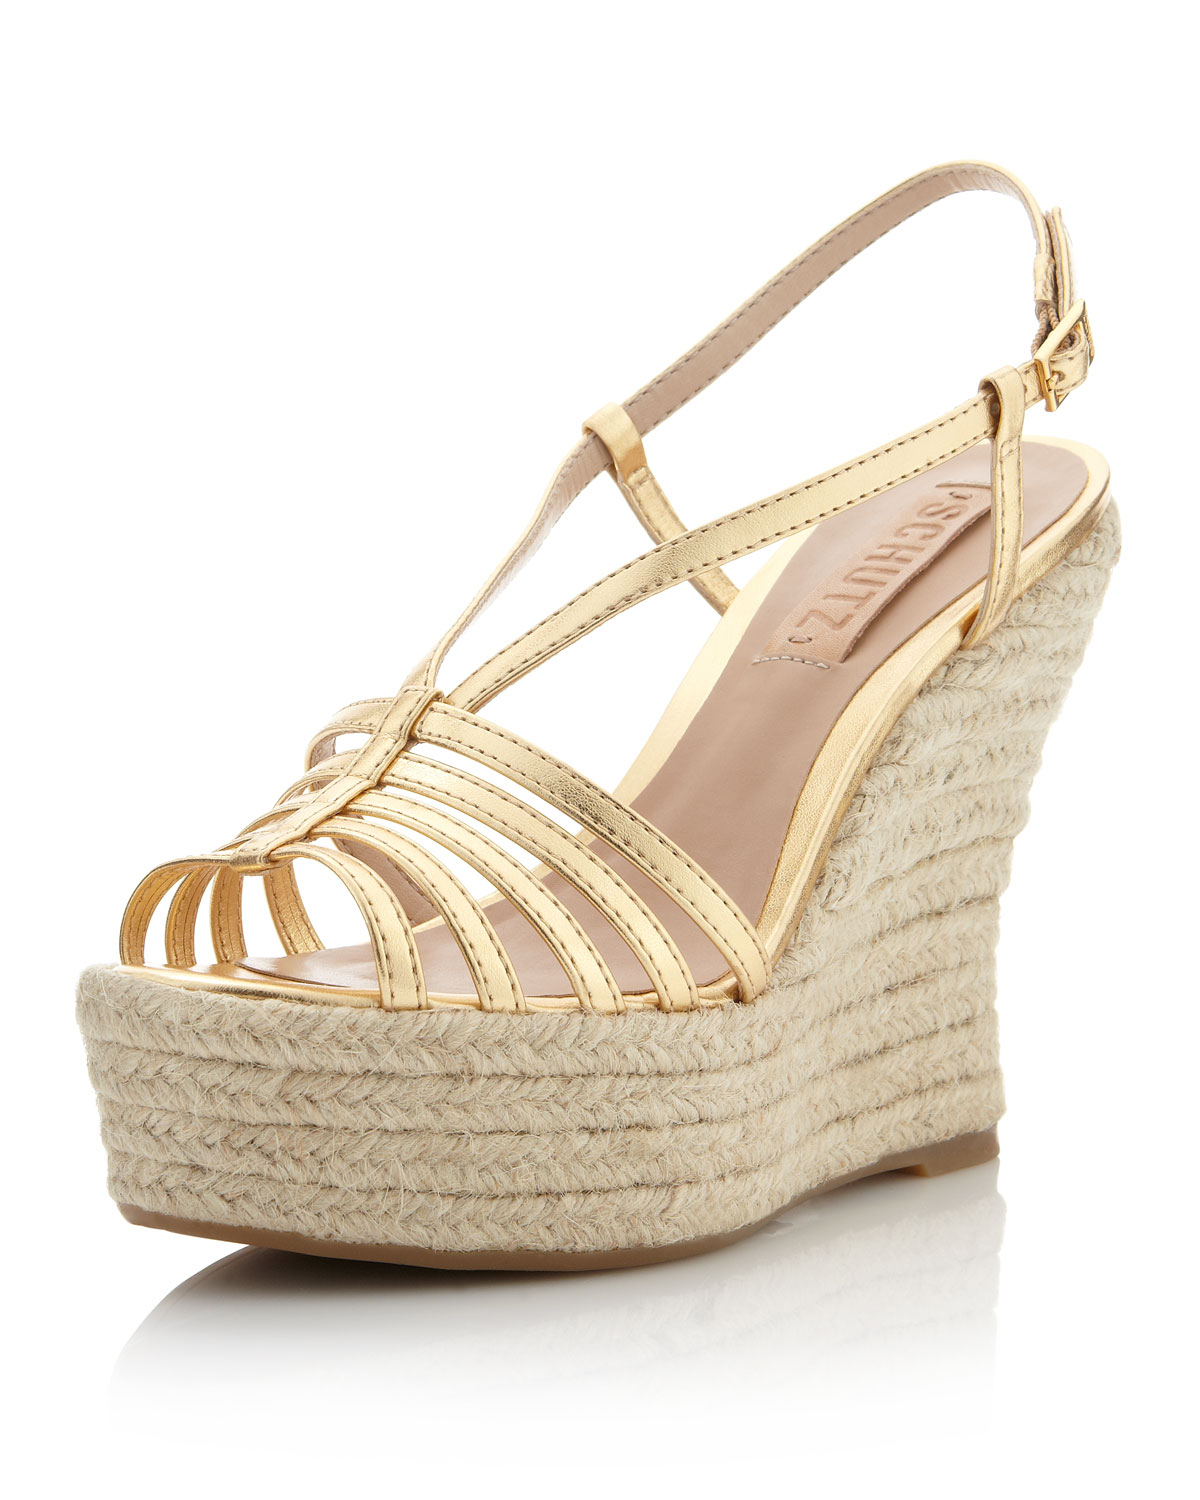 Schutz Slingback Wedge Sandal Gold In Gold Lyst